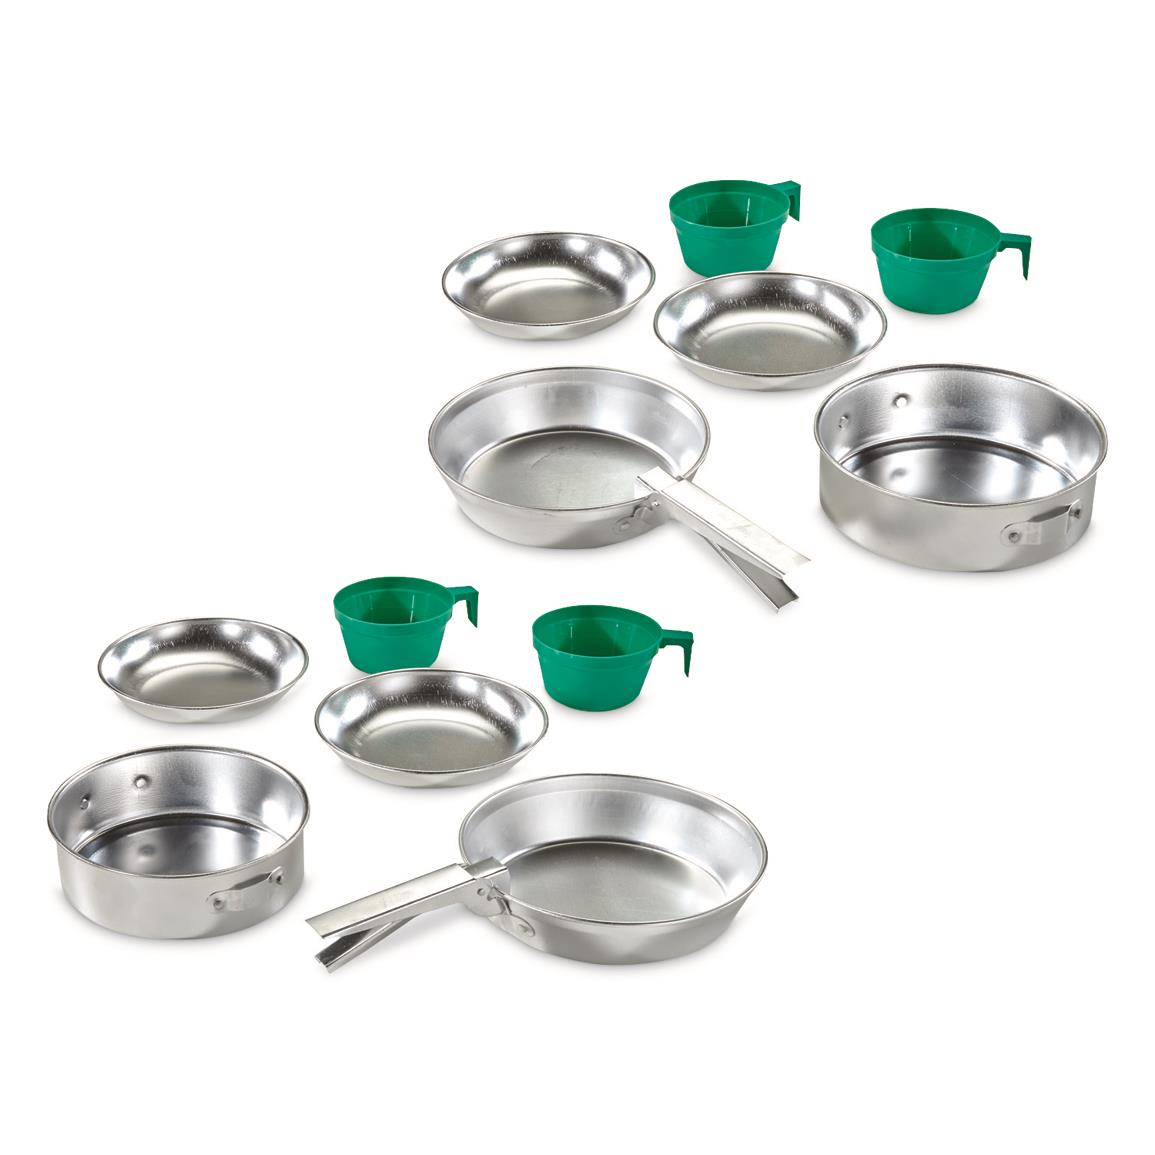 Mil-Tec 4-person Mess Kit Cook Set